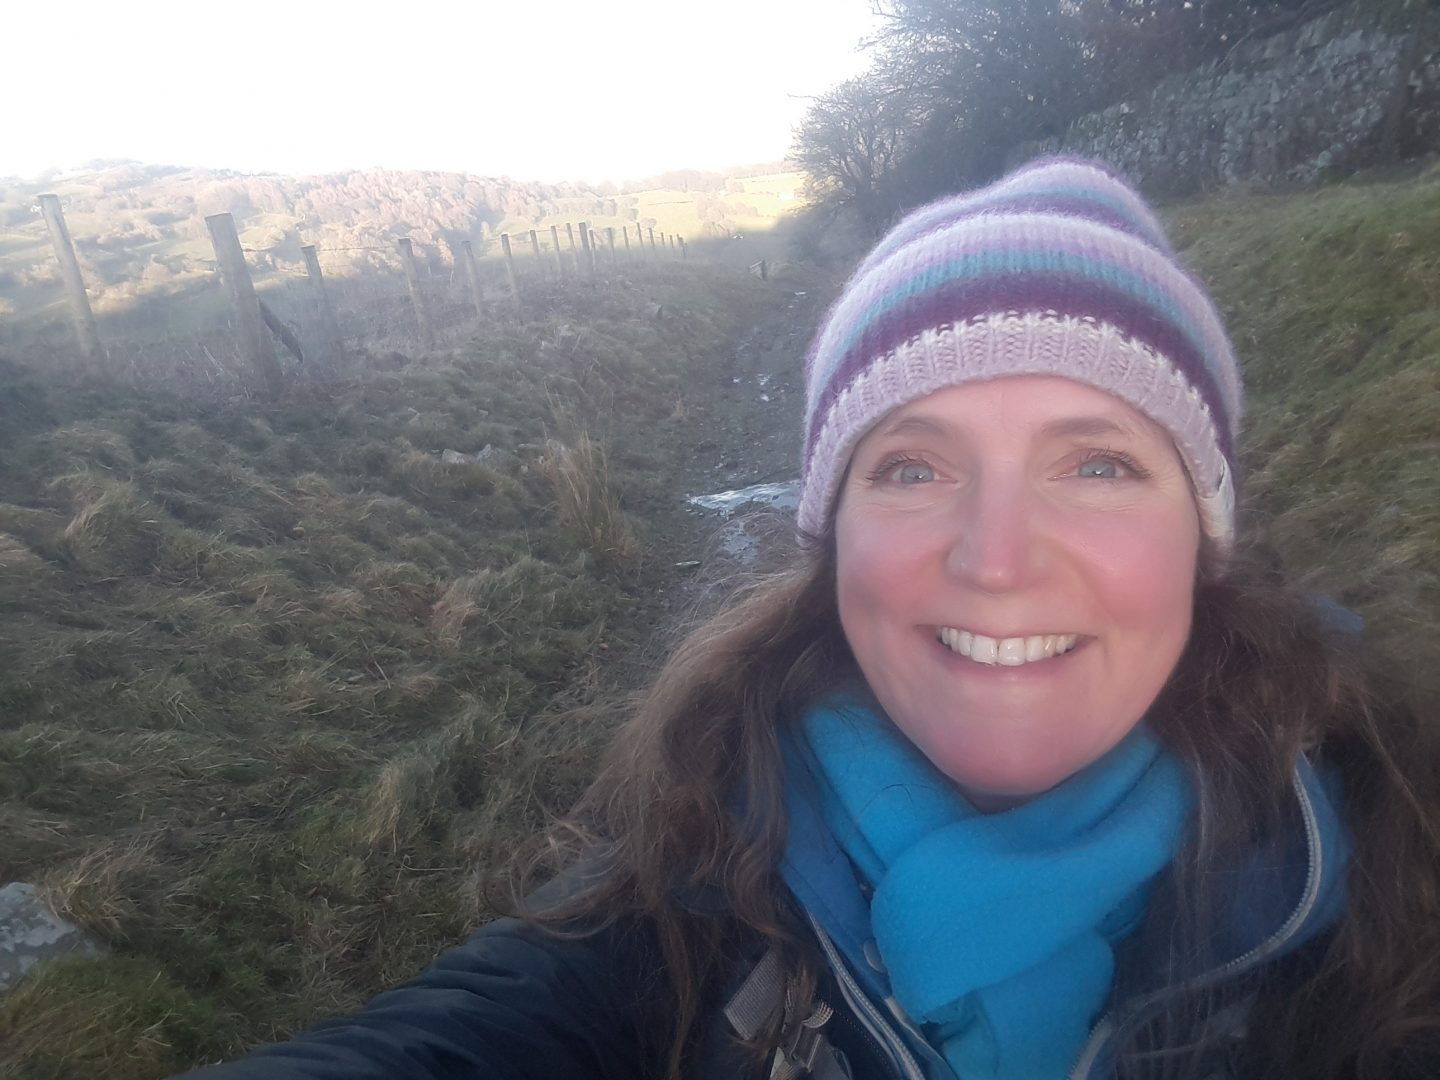 Zoe Langley-Wathen standing at the top of a path called the gully.  It is muddy and fenced on one side with a steep bank and dry stone walling on the other.  Zoe wears a stripey woollen hat, a blue scarf, blue and black jacket and a big smile.